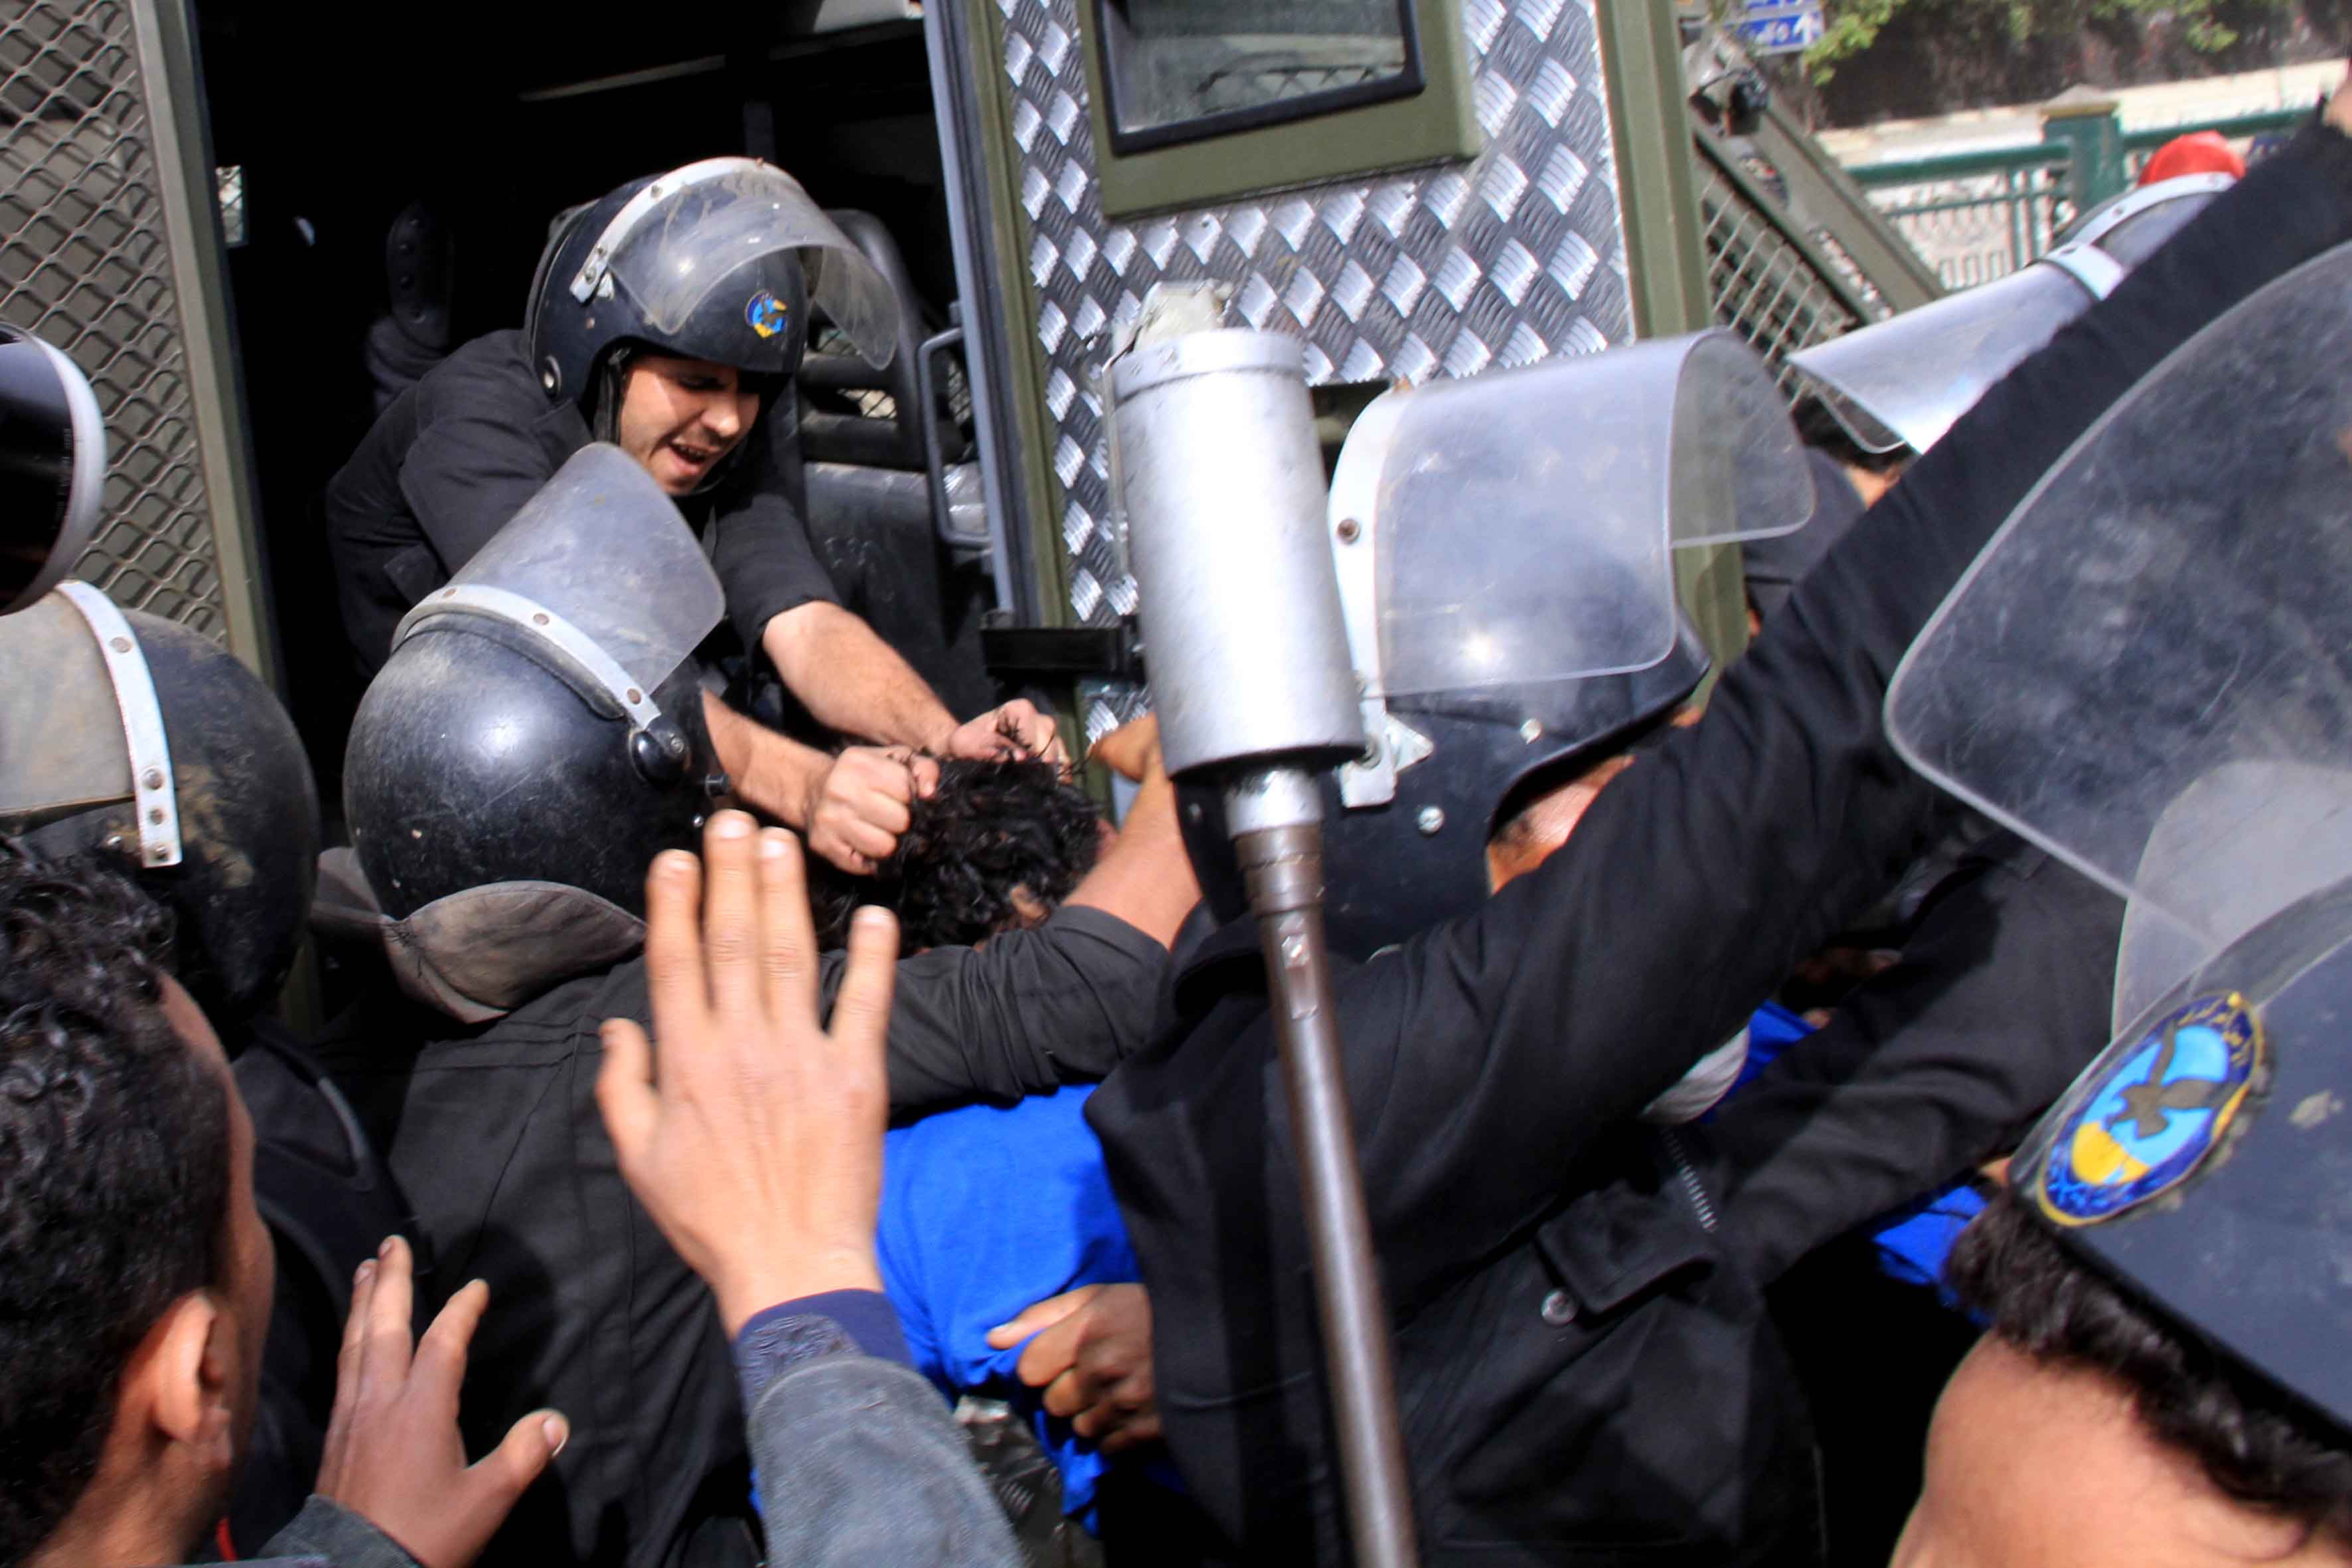 On the second anniversary of the 2011 revolution, policemen in Egypt pull one protestor by the hair after arresting him in central Cairo, the scene of violent clashes between policemen guarding state institutions and hotels and protestors